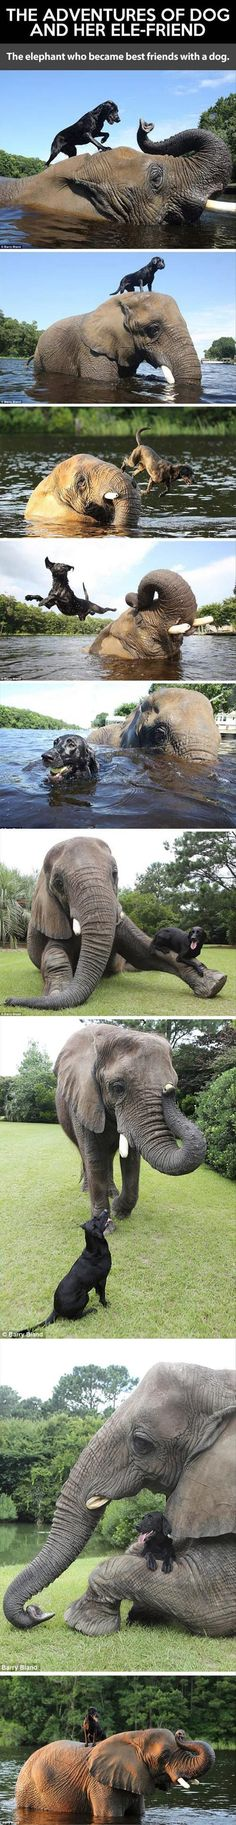 The Elephant Who Became Best Friends With A Dog cute animals dogs adorable dog amazing elephant story puppy animal pets stories funny animals funny dogs animal odd couples